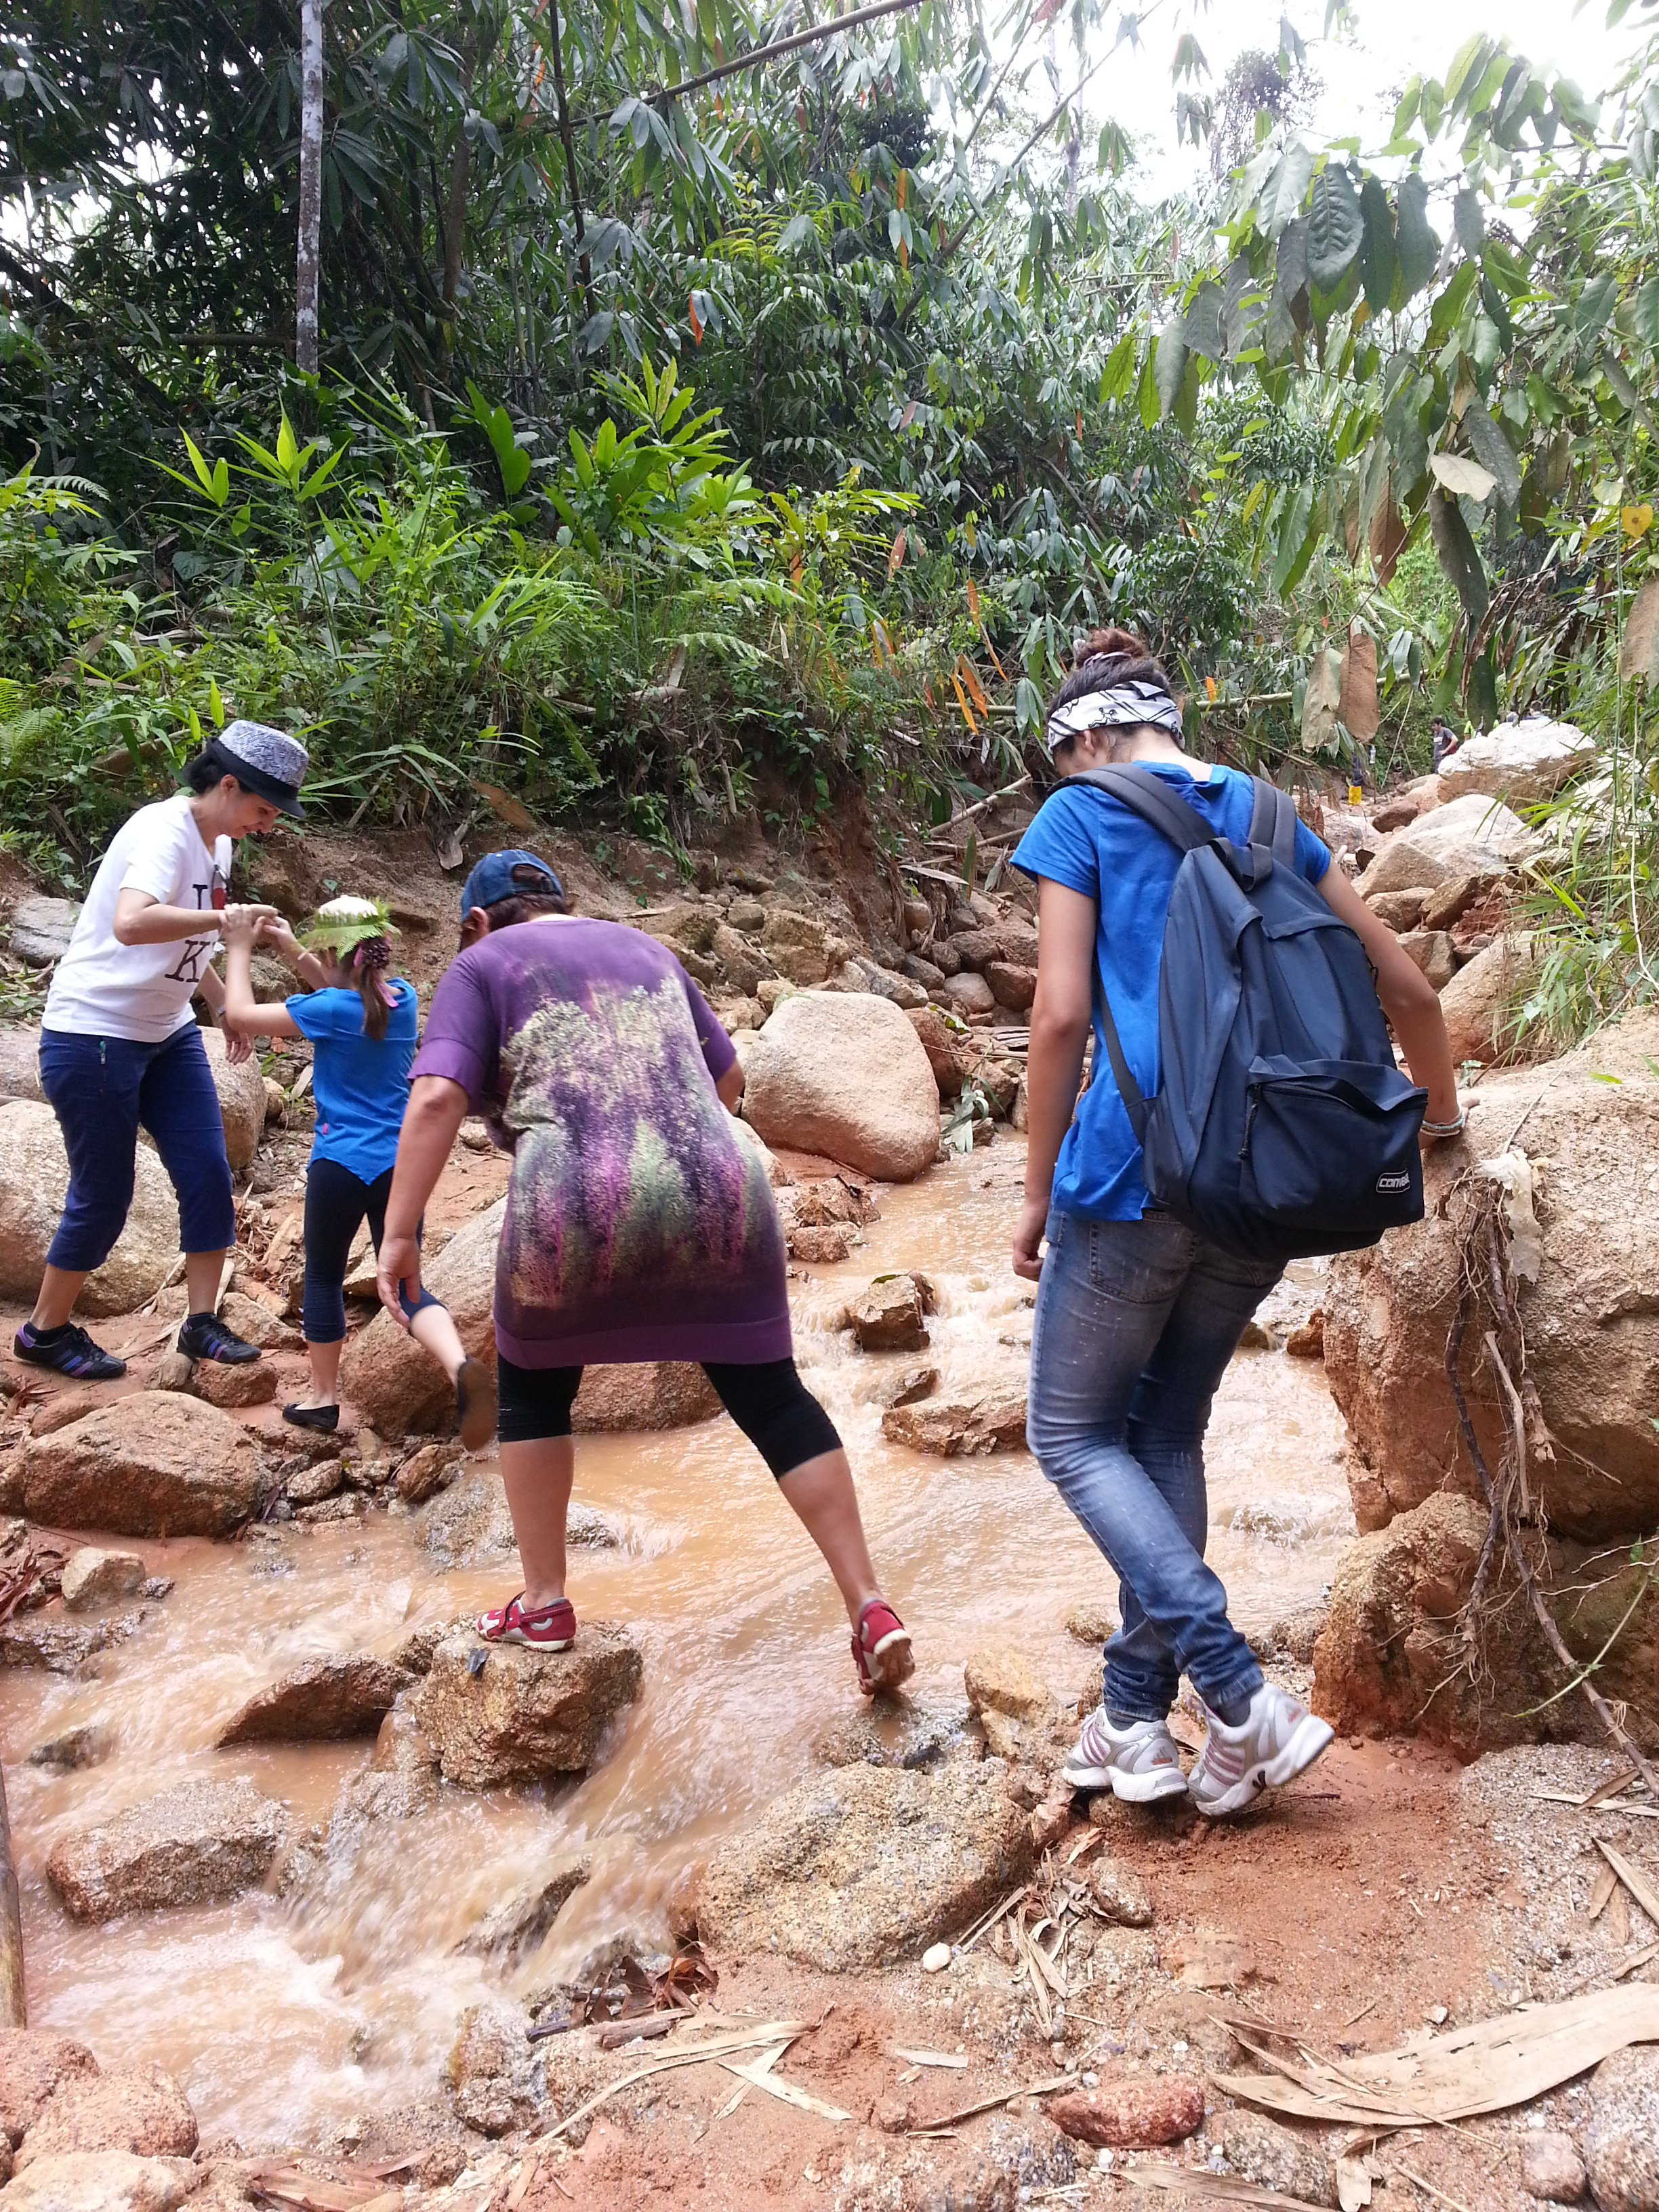 rafflesia expedition in Gunung Tangga